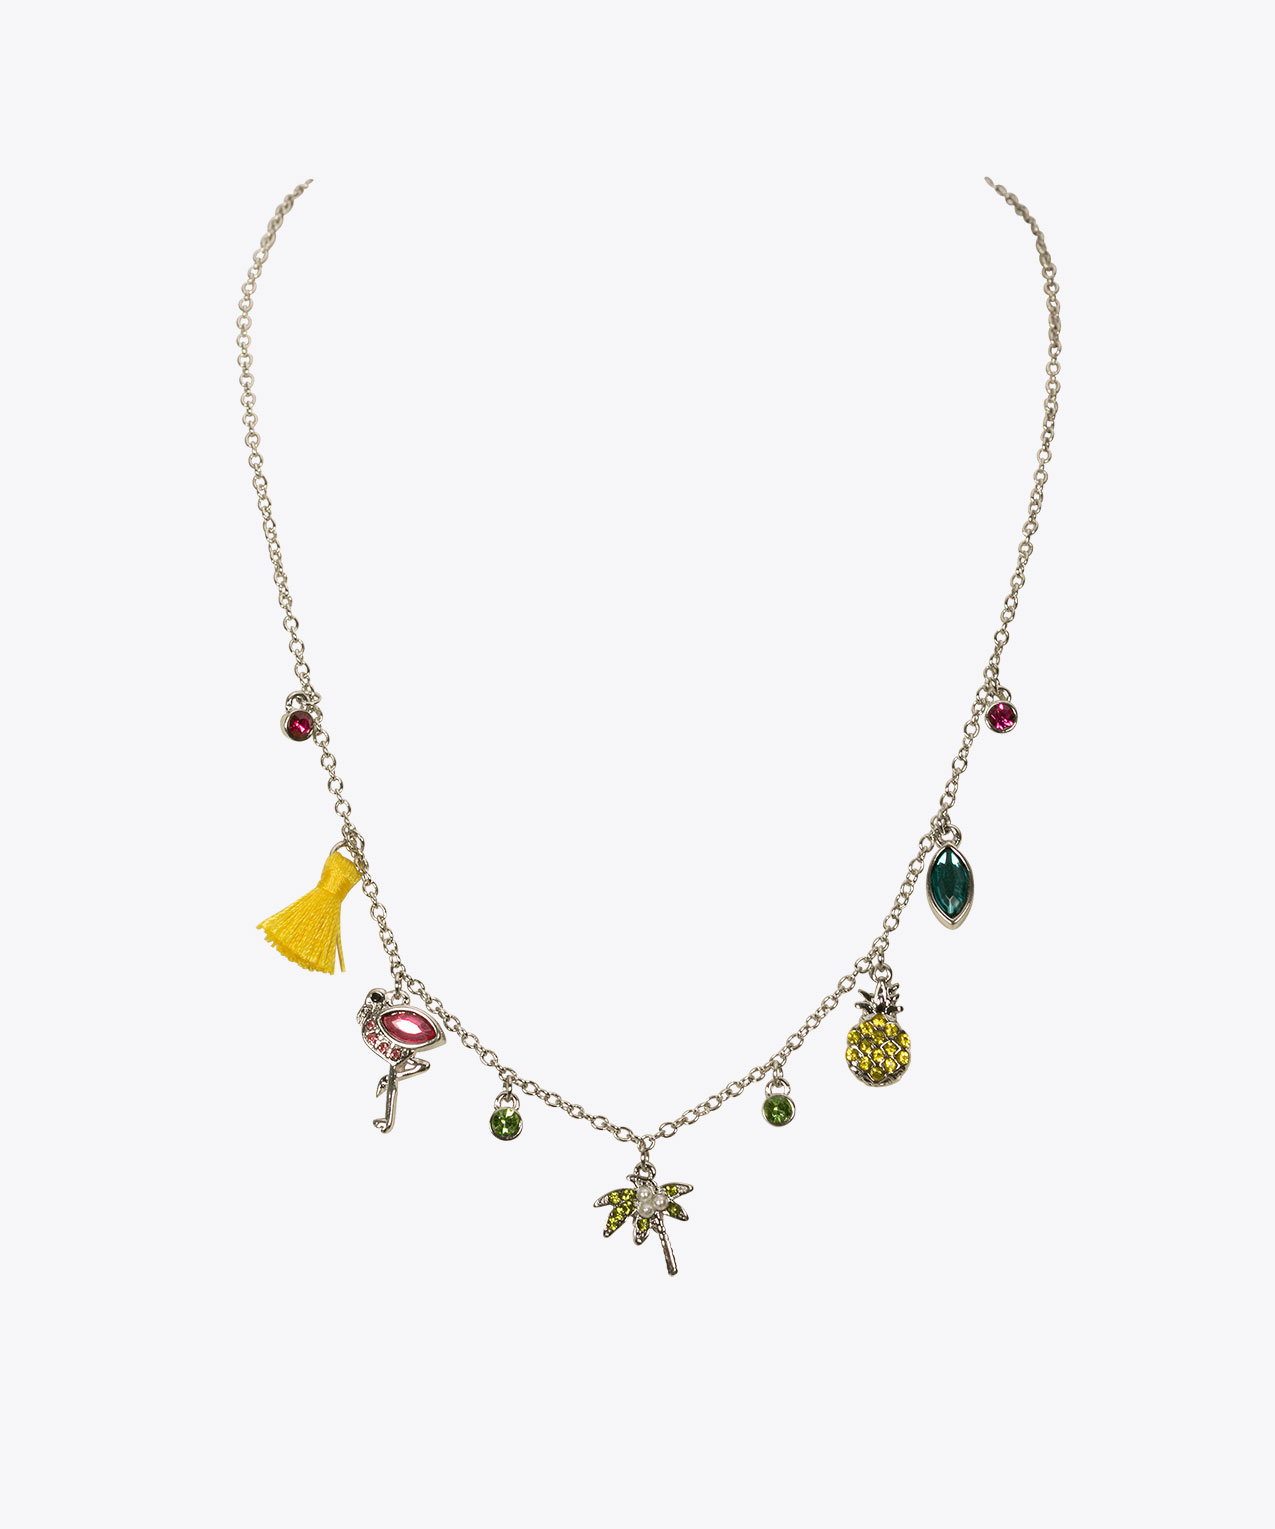 Tropical Charm Necklace, Rhodium/Yellow/Hot Pink, hi-res